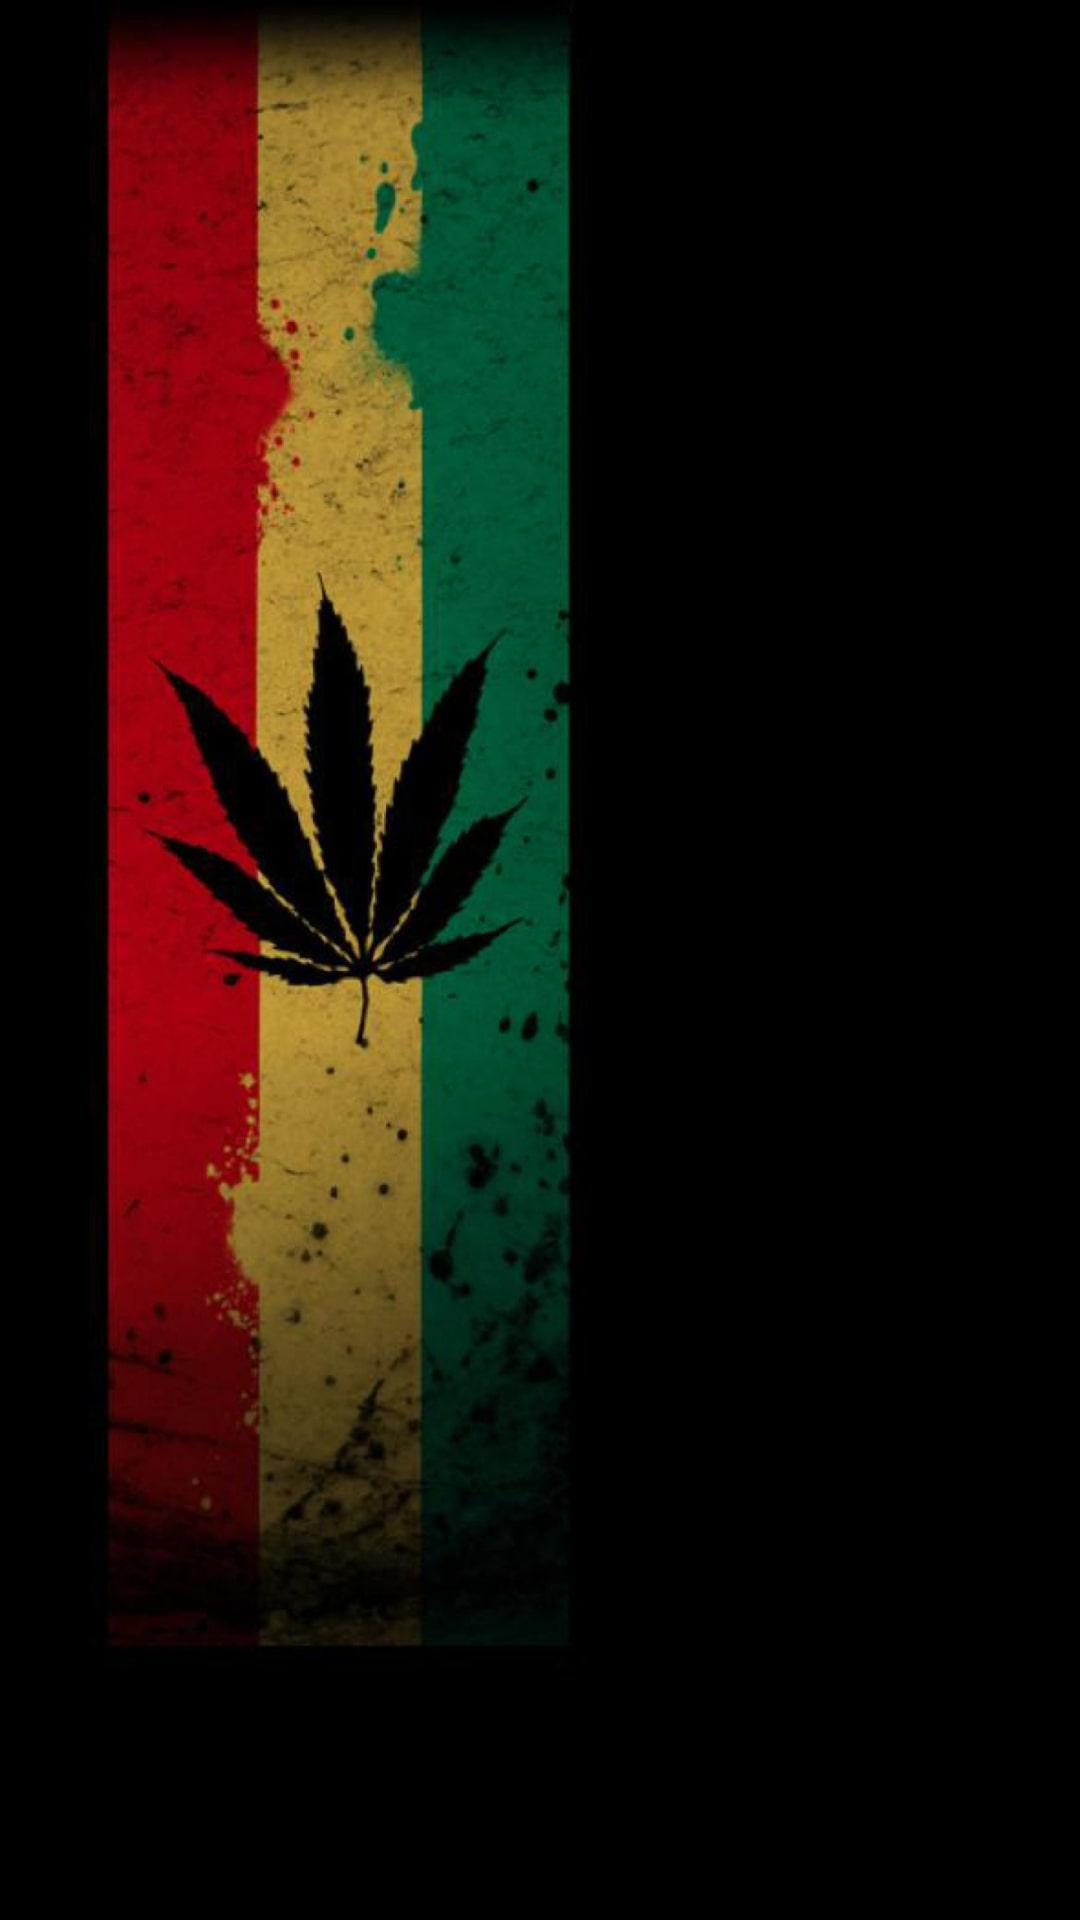 Weed Wallpaper for Iphone - KoLPaPer - Awesome Free HD ...